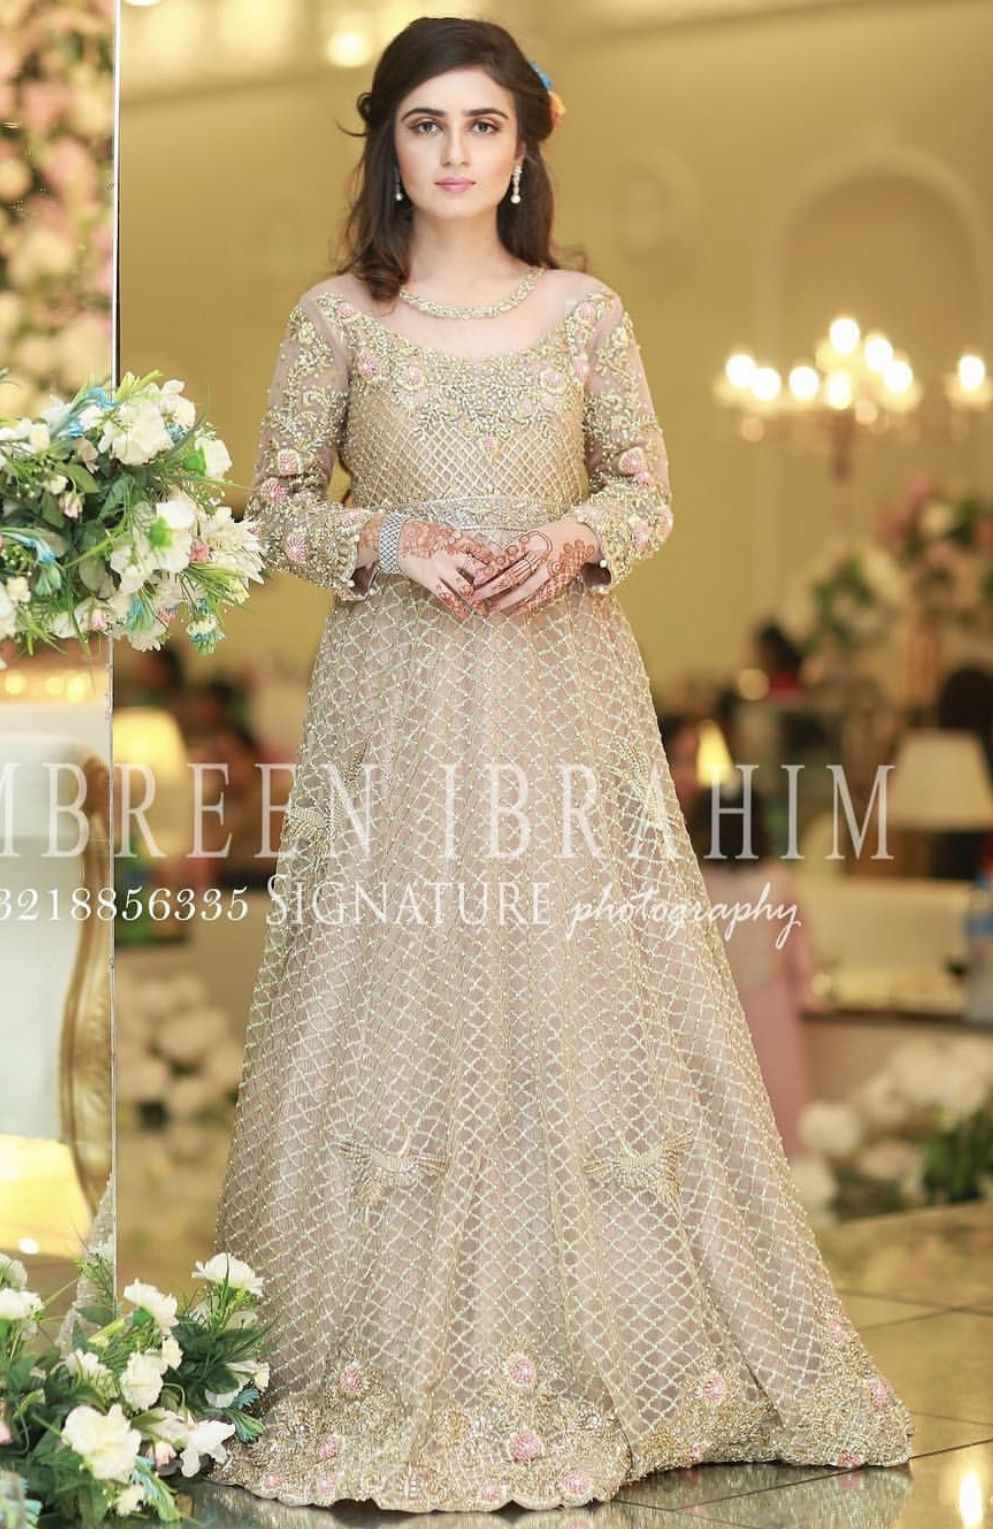 Brides Sister Pakistani Fancy Dresses Beautiful Bridal Dresses Indian Wedding Gowns,Cheap Plus Size Short Wedding Dresses